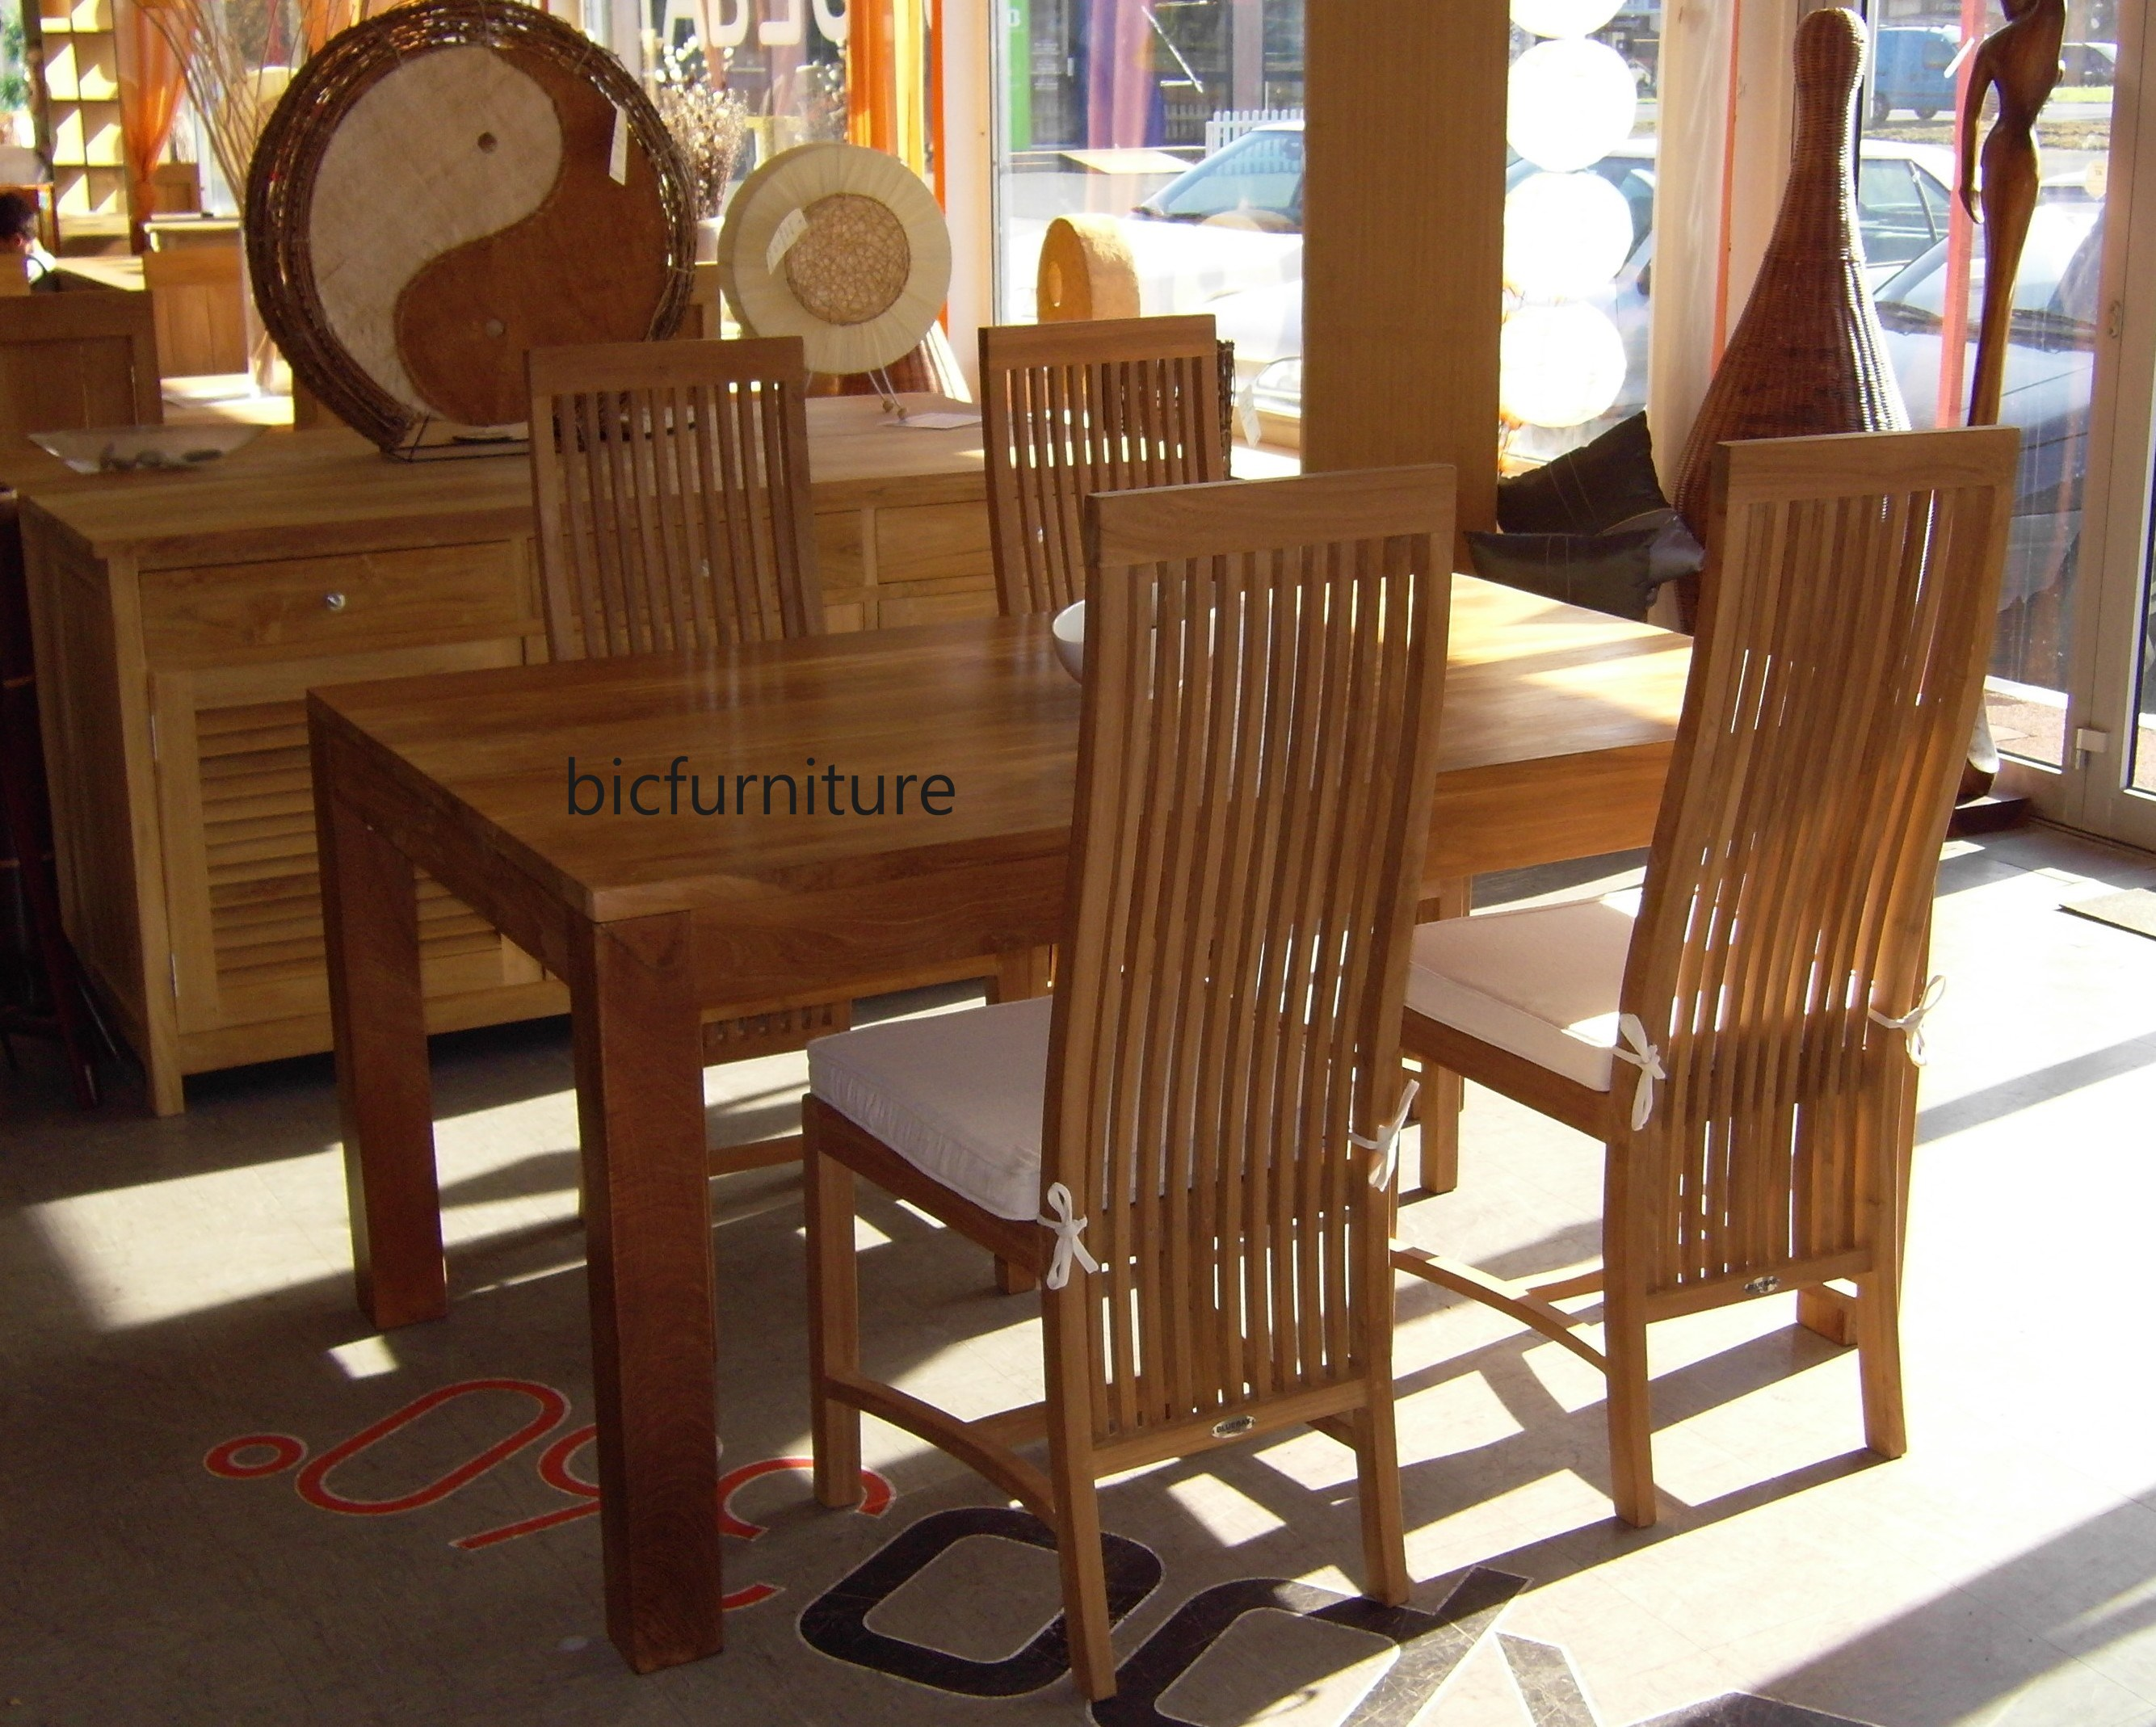 High Quality Teak Wood Dining Set for the Discerning Home Owner by BIC